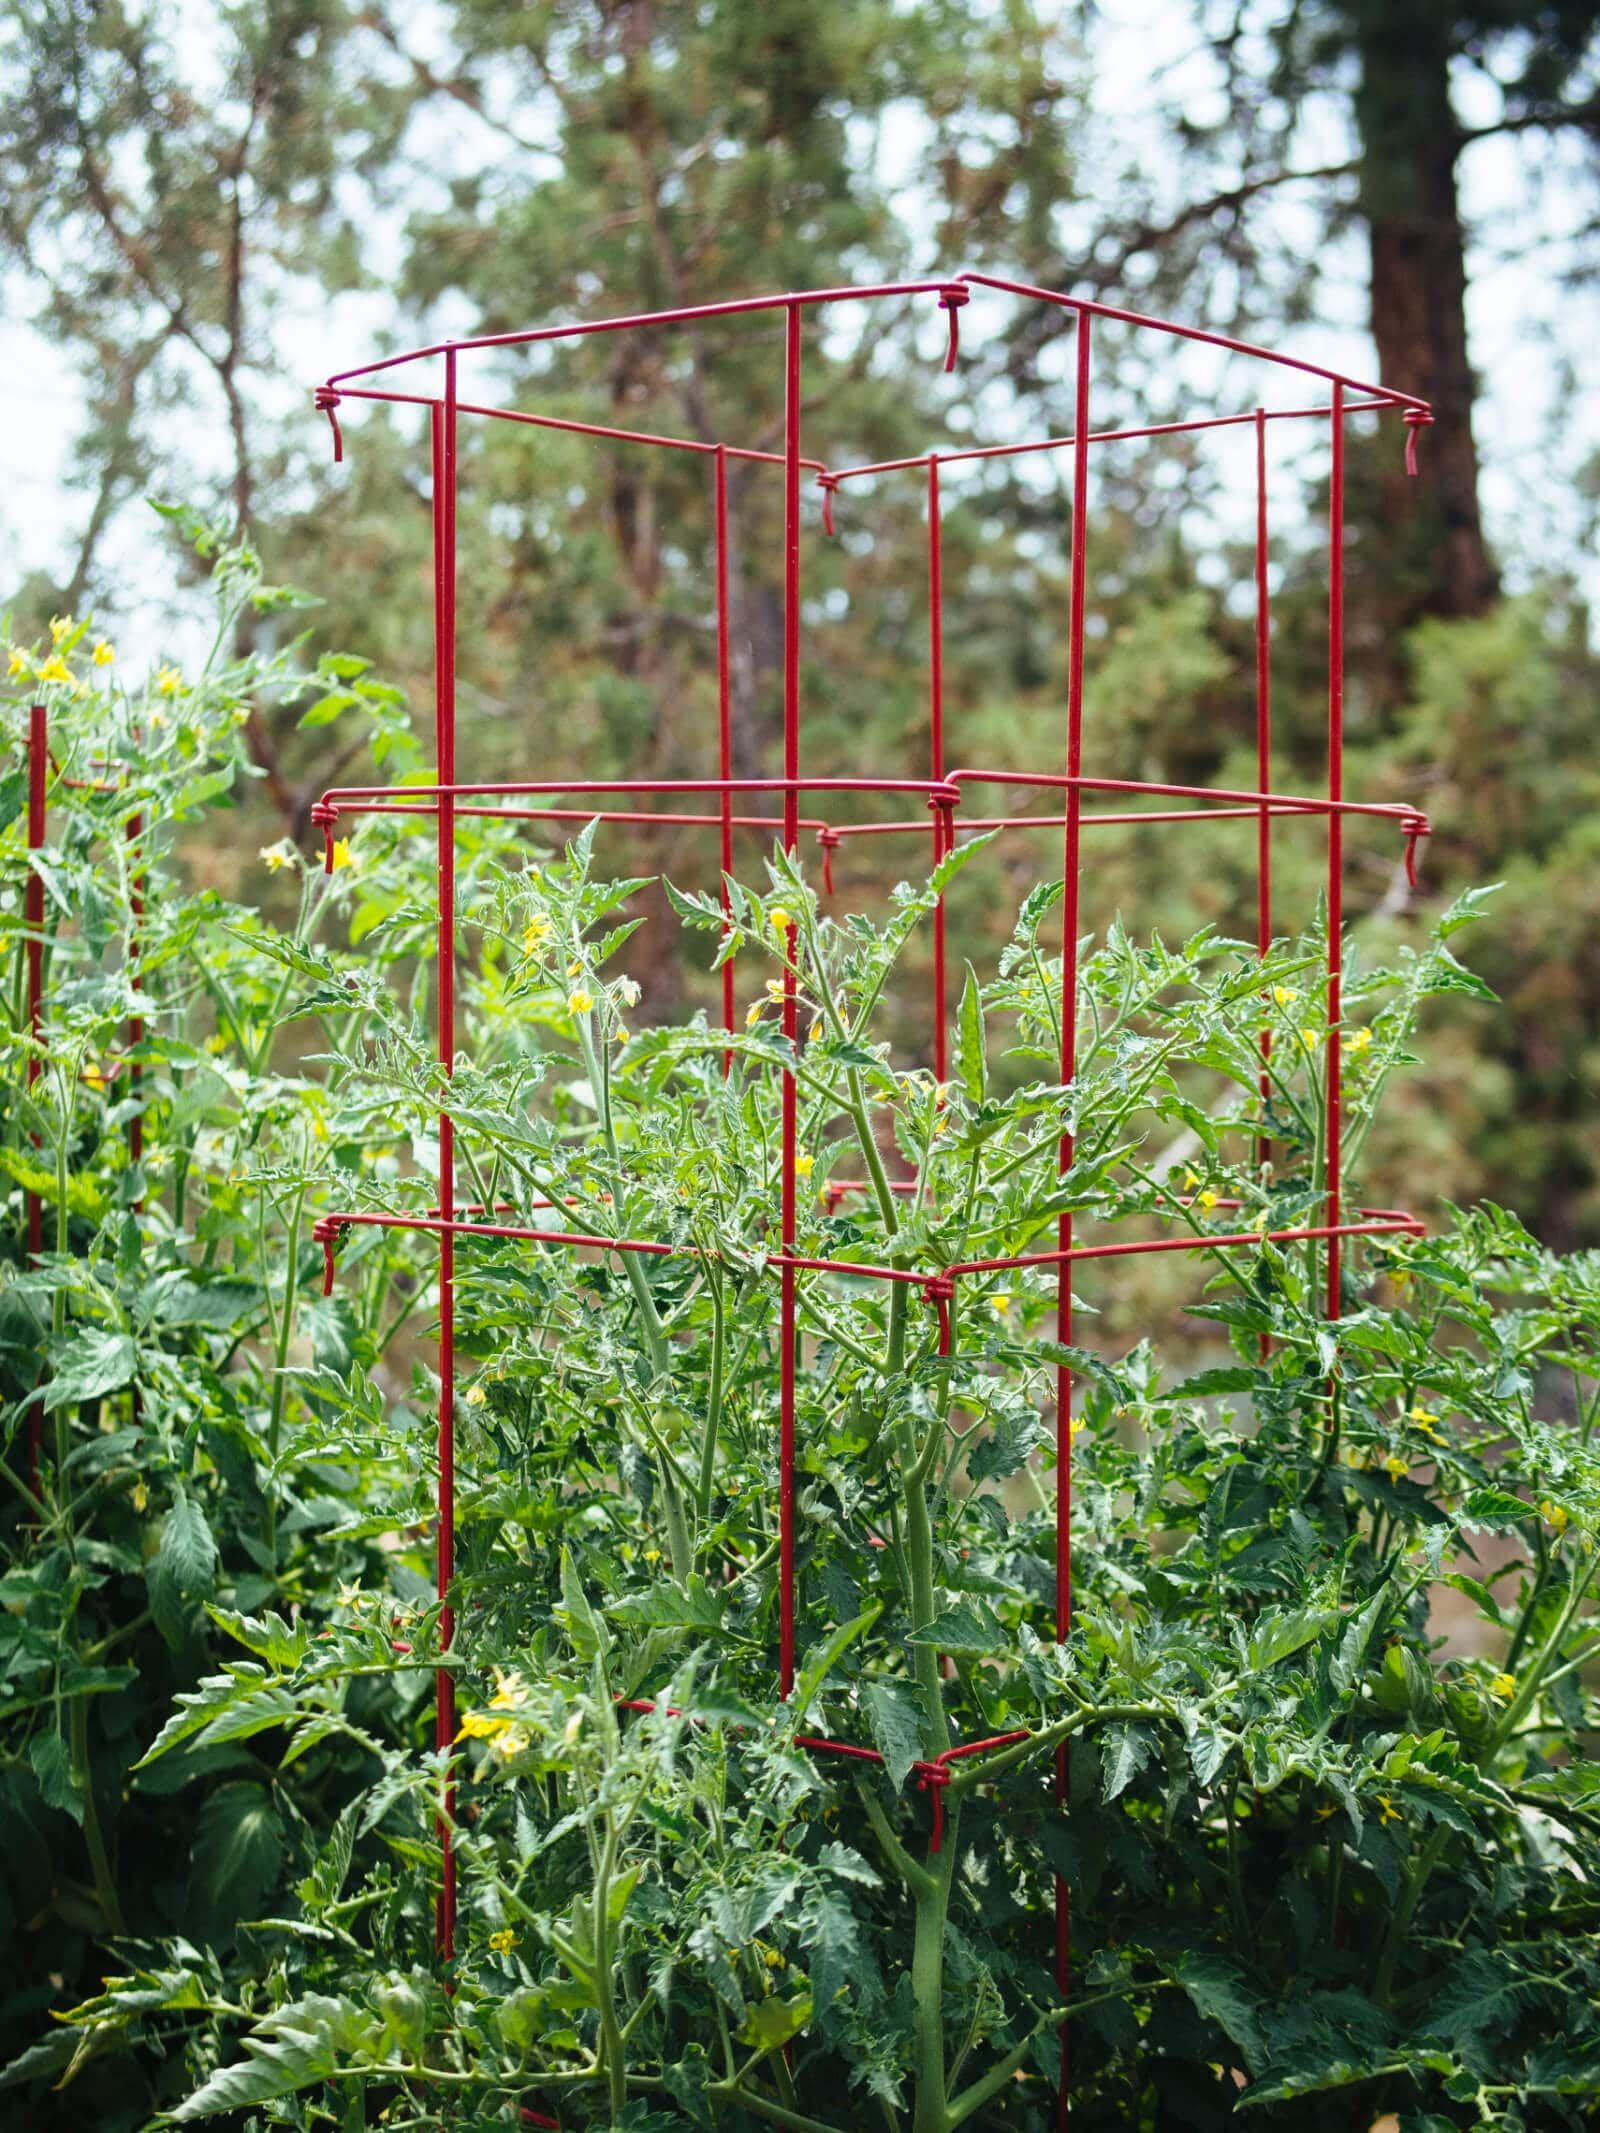 Stake, cage, or trellis your tomato plants early